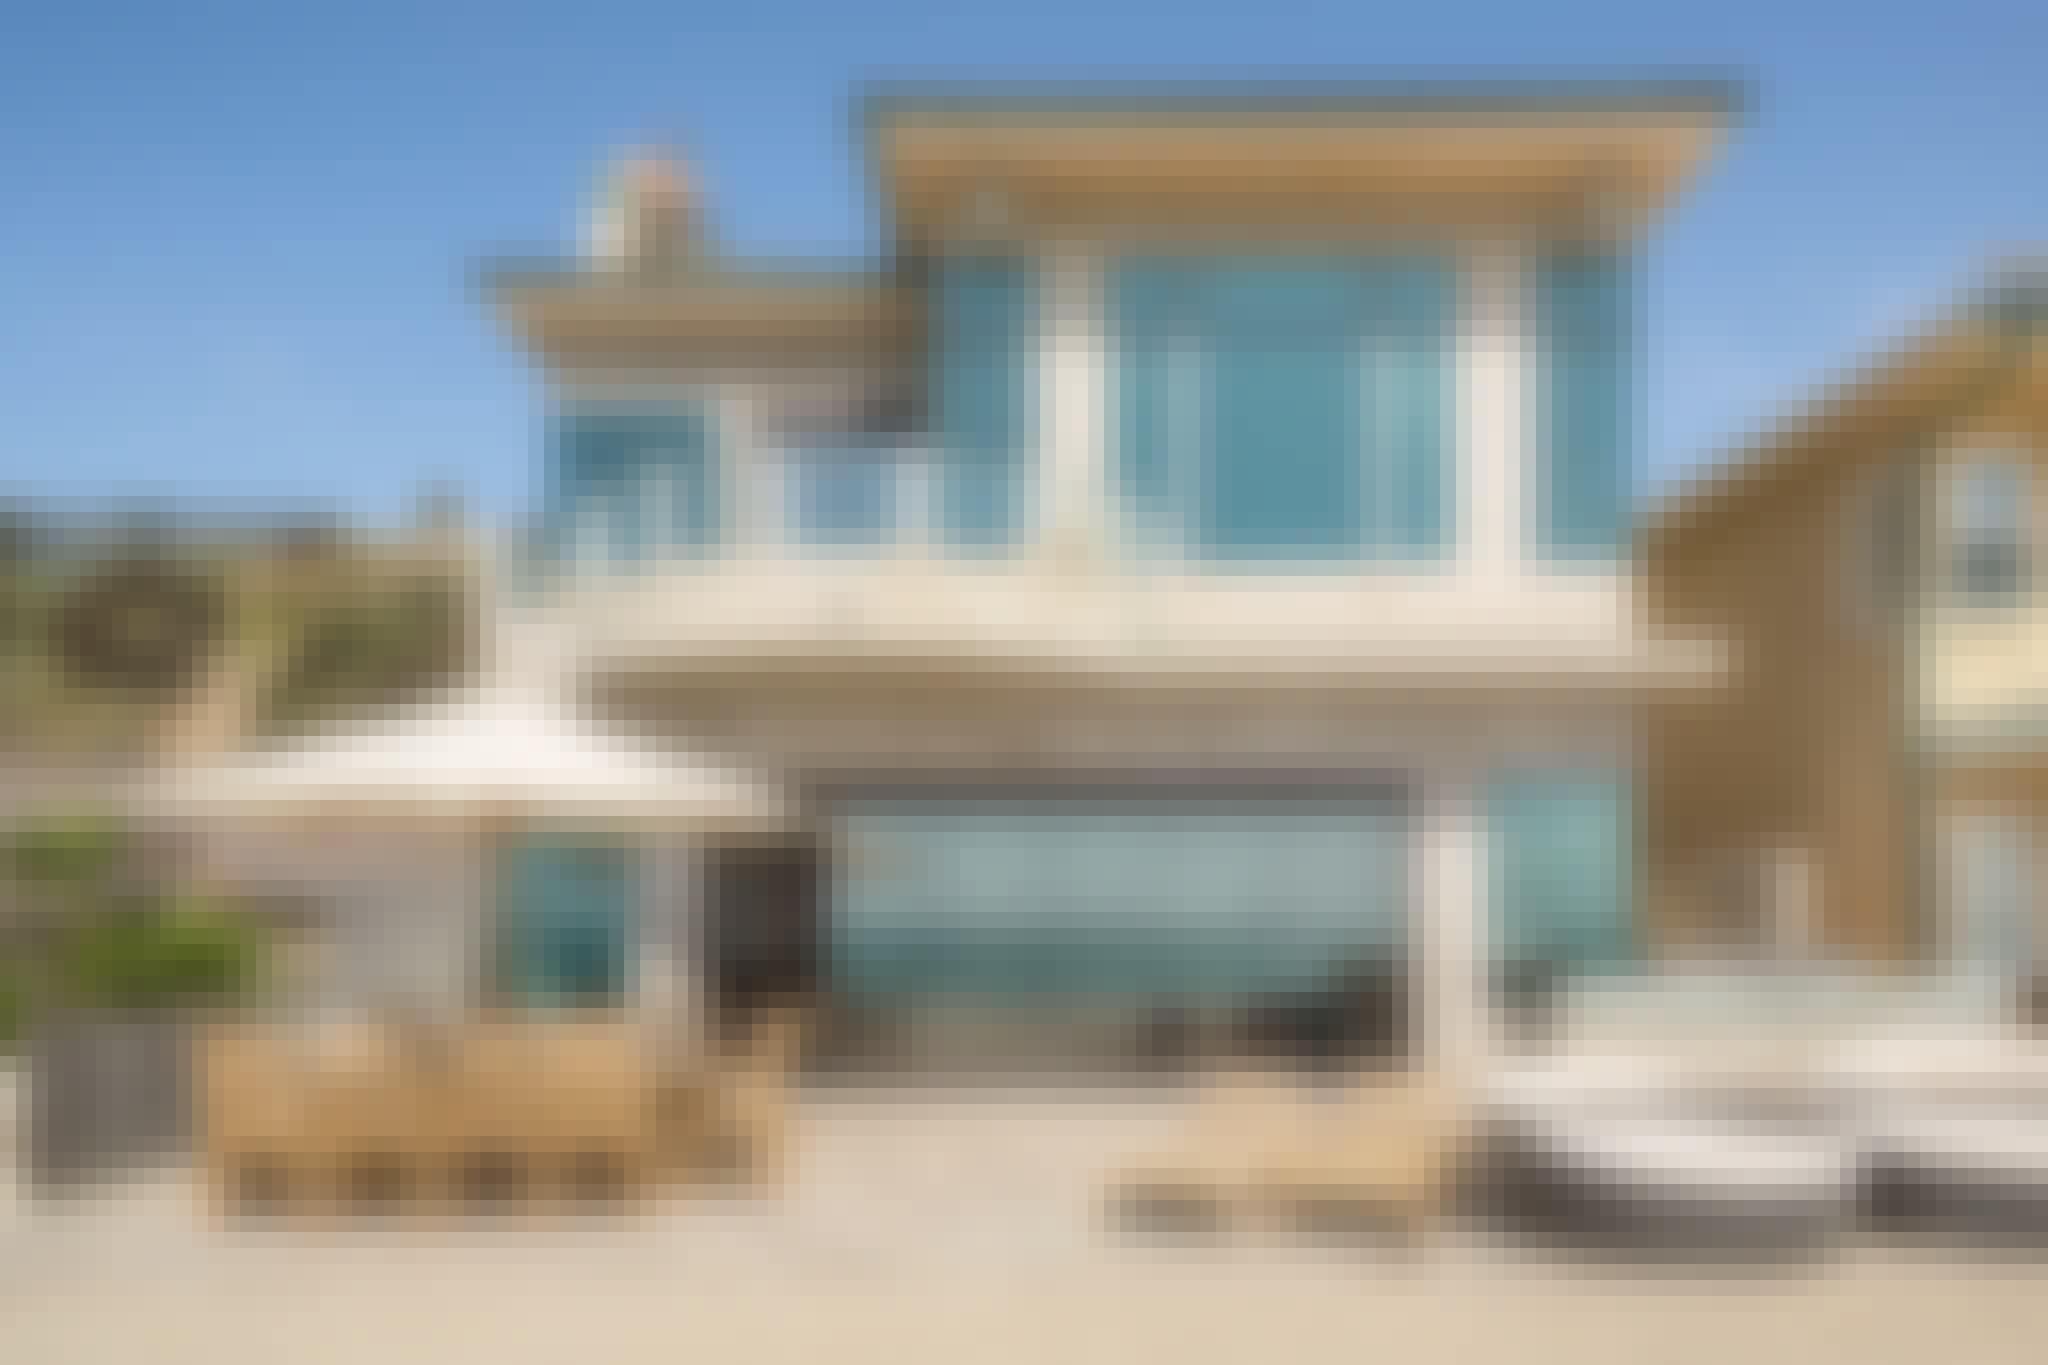 NanaWall ClimaCLEAR residential glass walls in beach front home